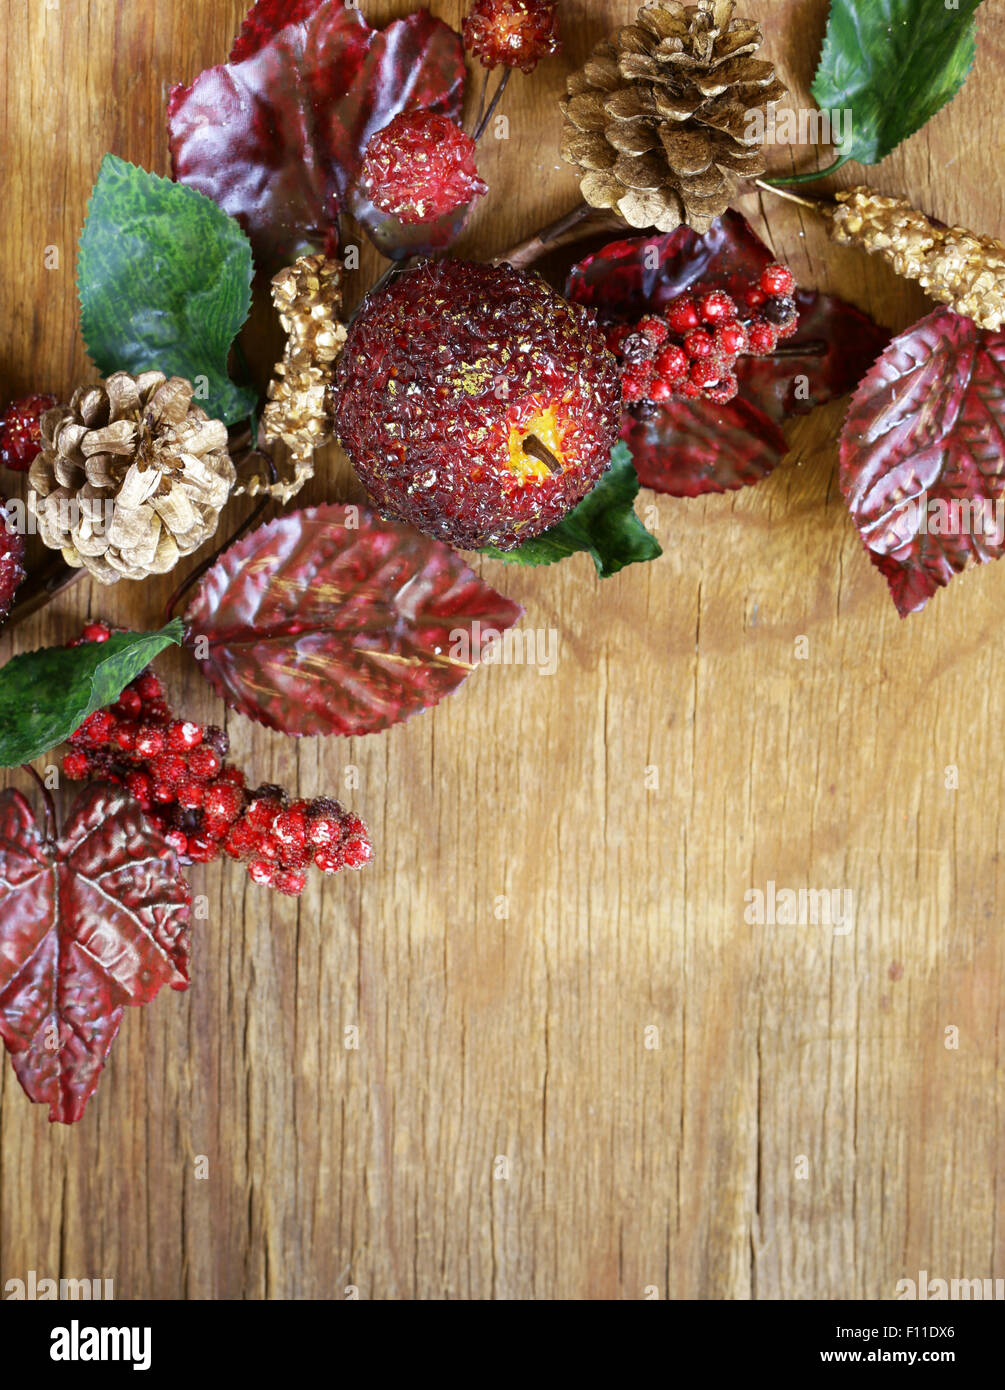 Autumnal Composition With Fruits And Leaves Decorations For